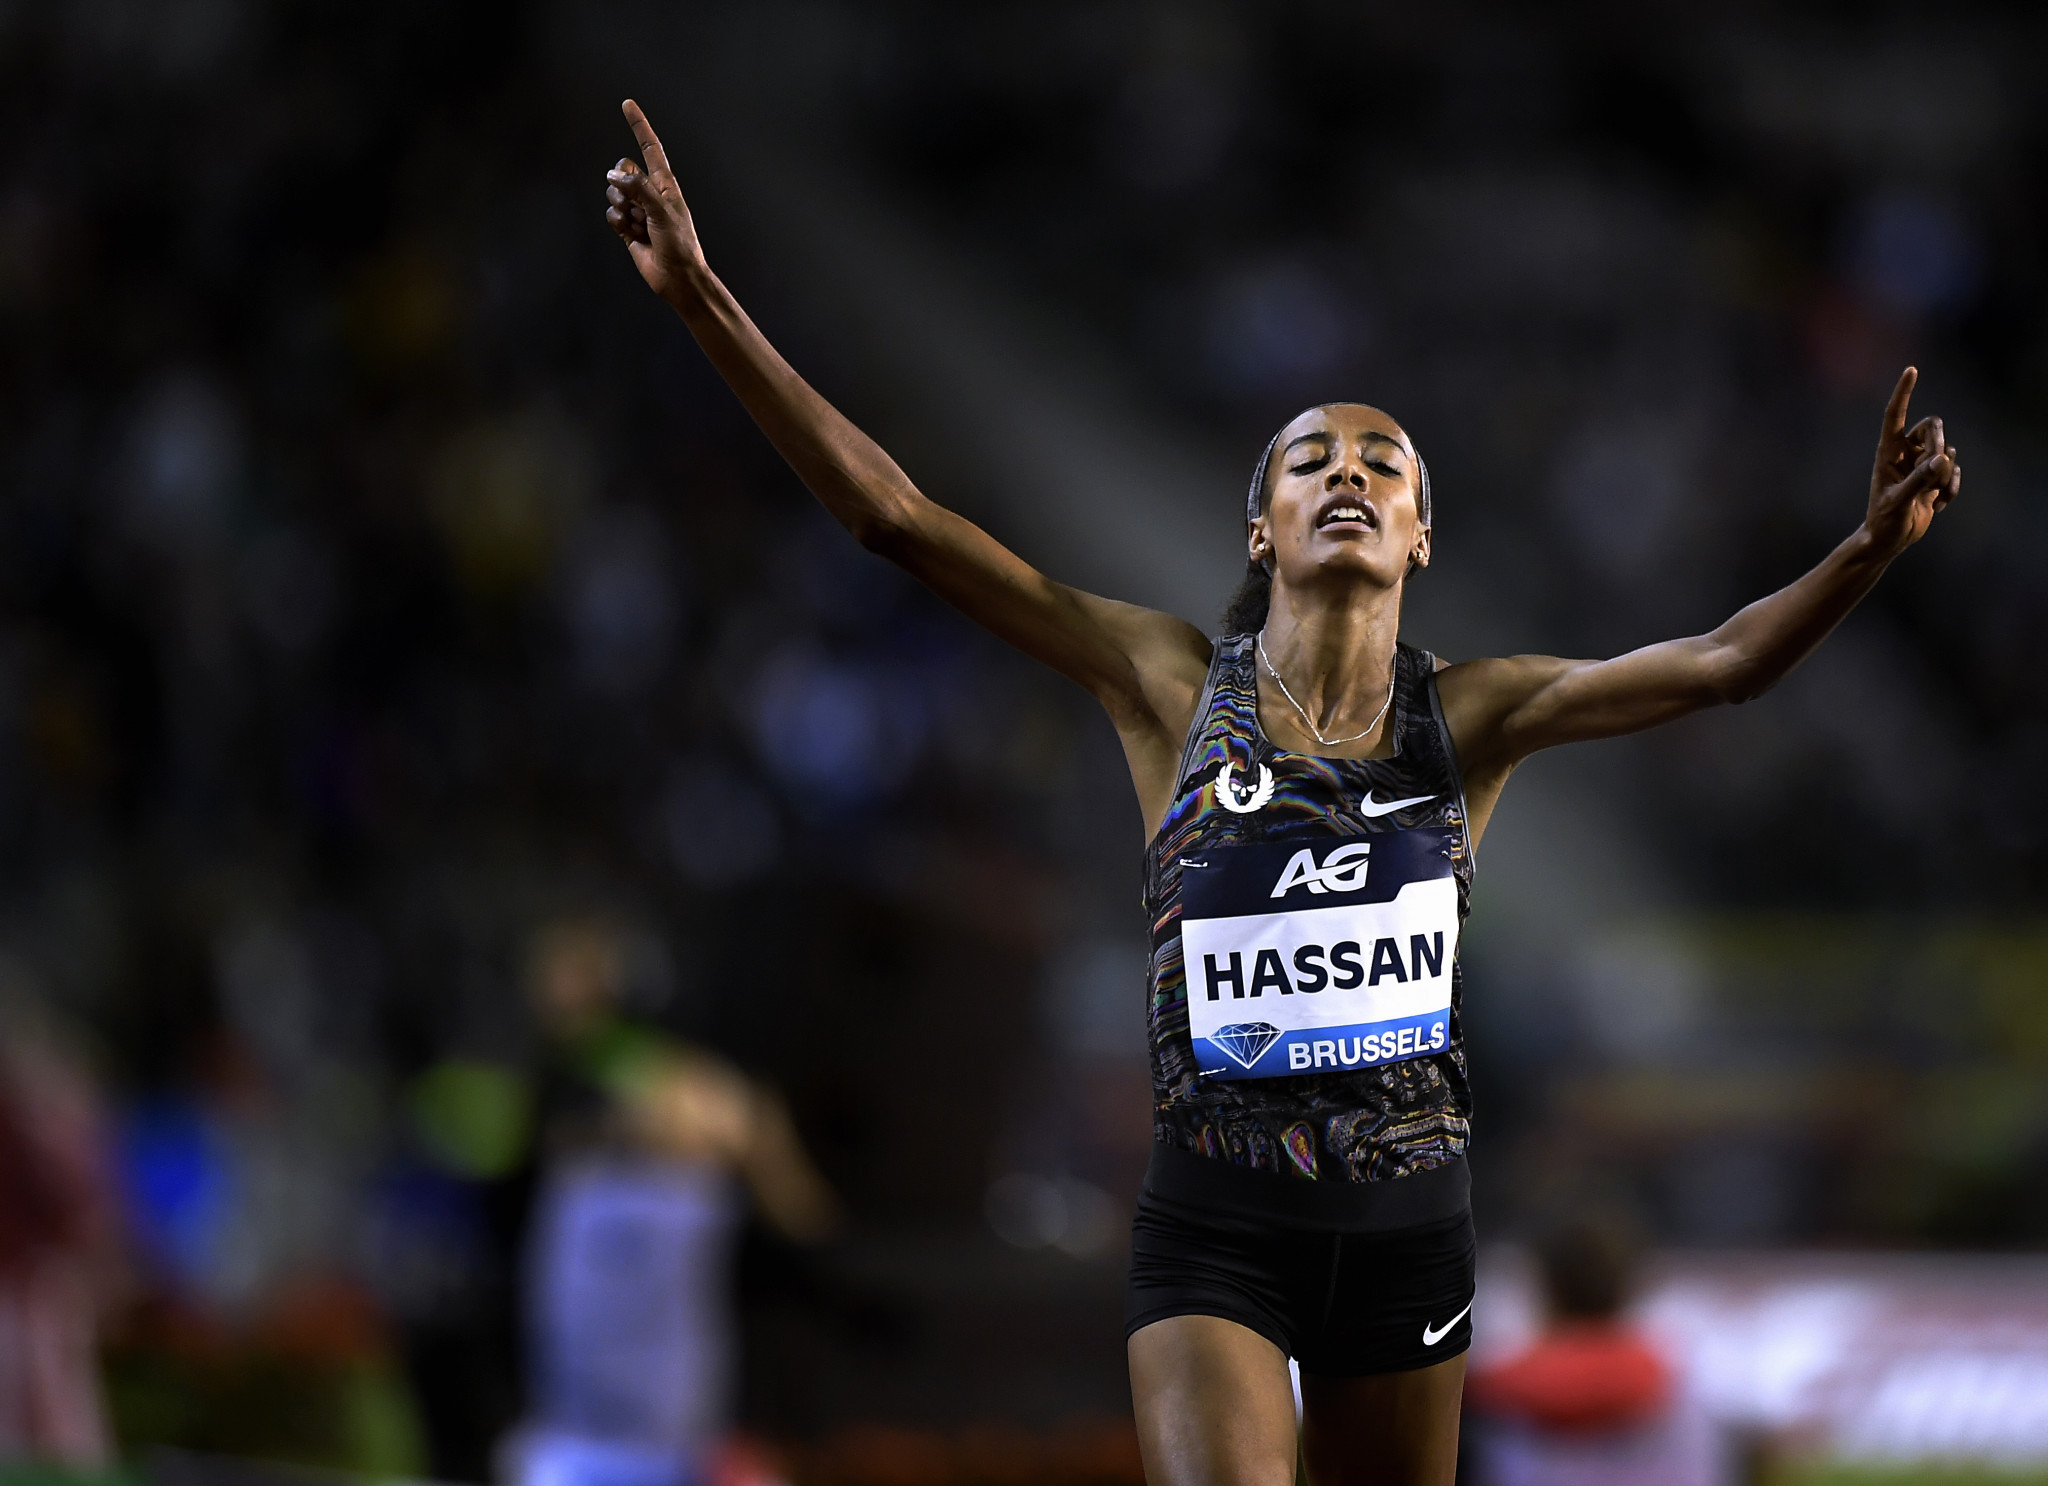 Sifan Hassan of The Netherlands has golden prospects at the IAAF World Championships  ©Getty Images